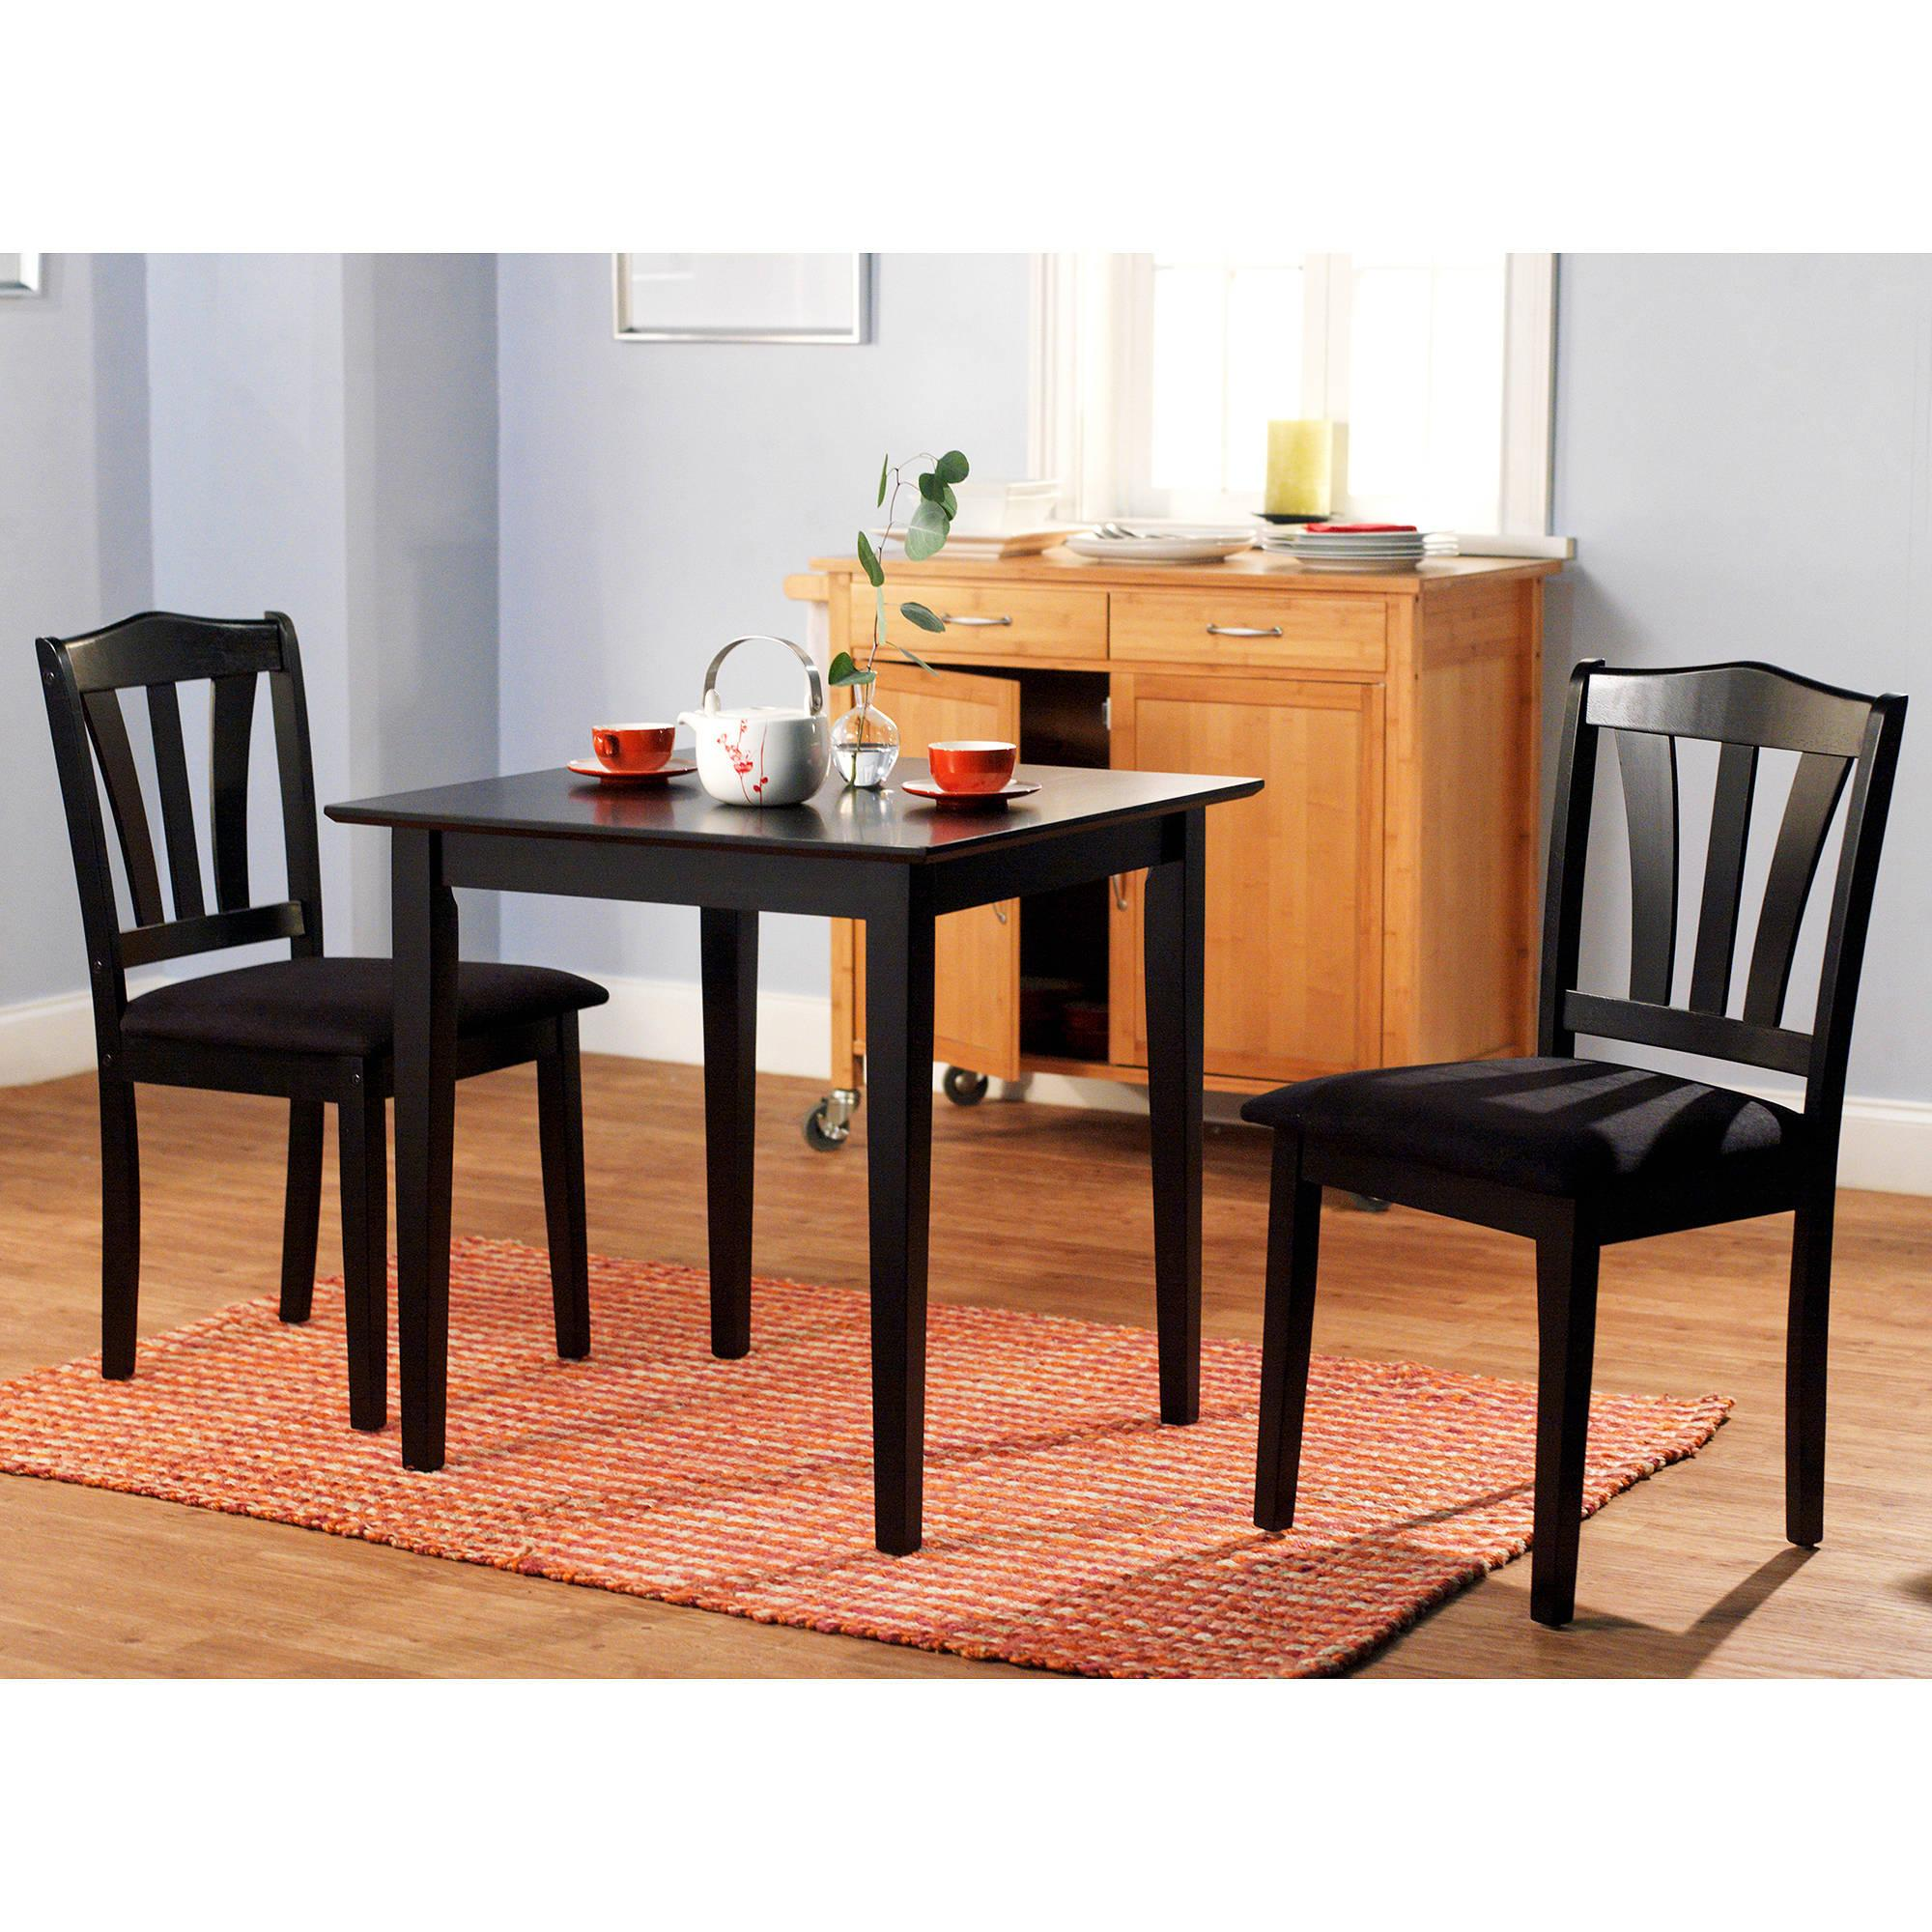 Dinning Set: 3 Piece Dining Set Table 2 Chairs Kitchen Room Wood